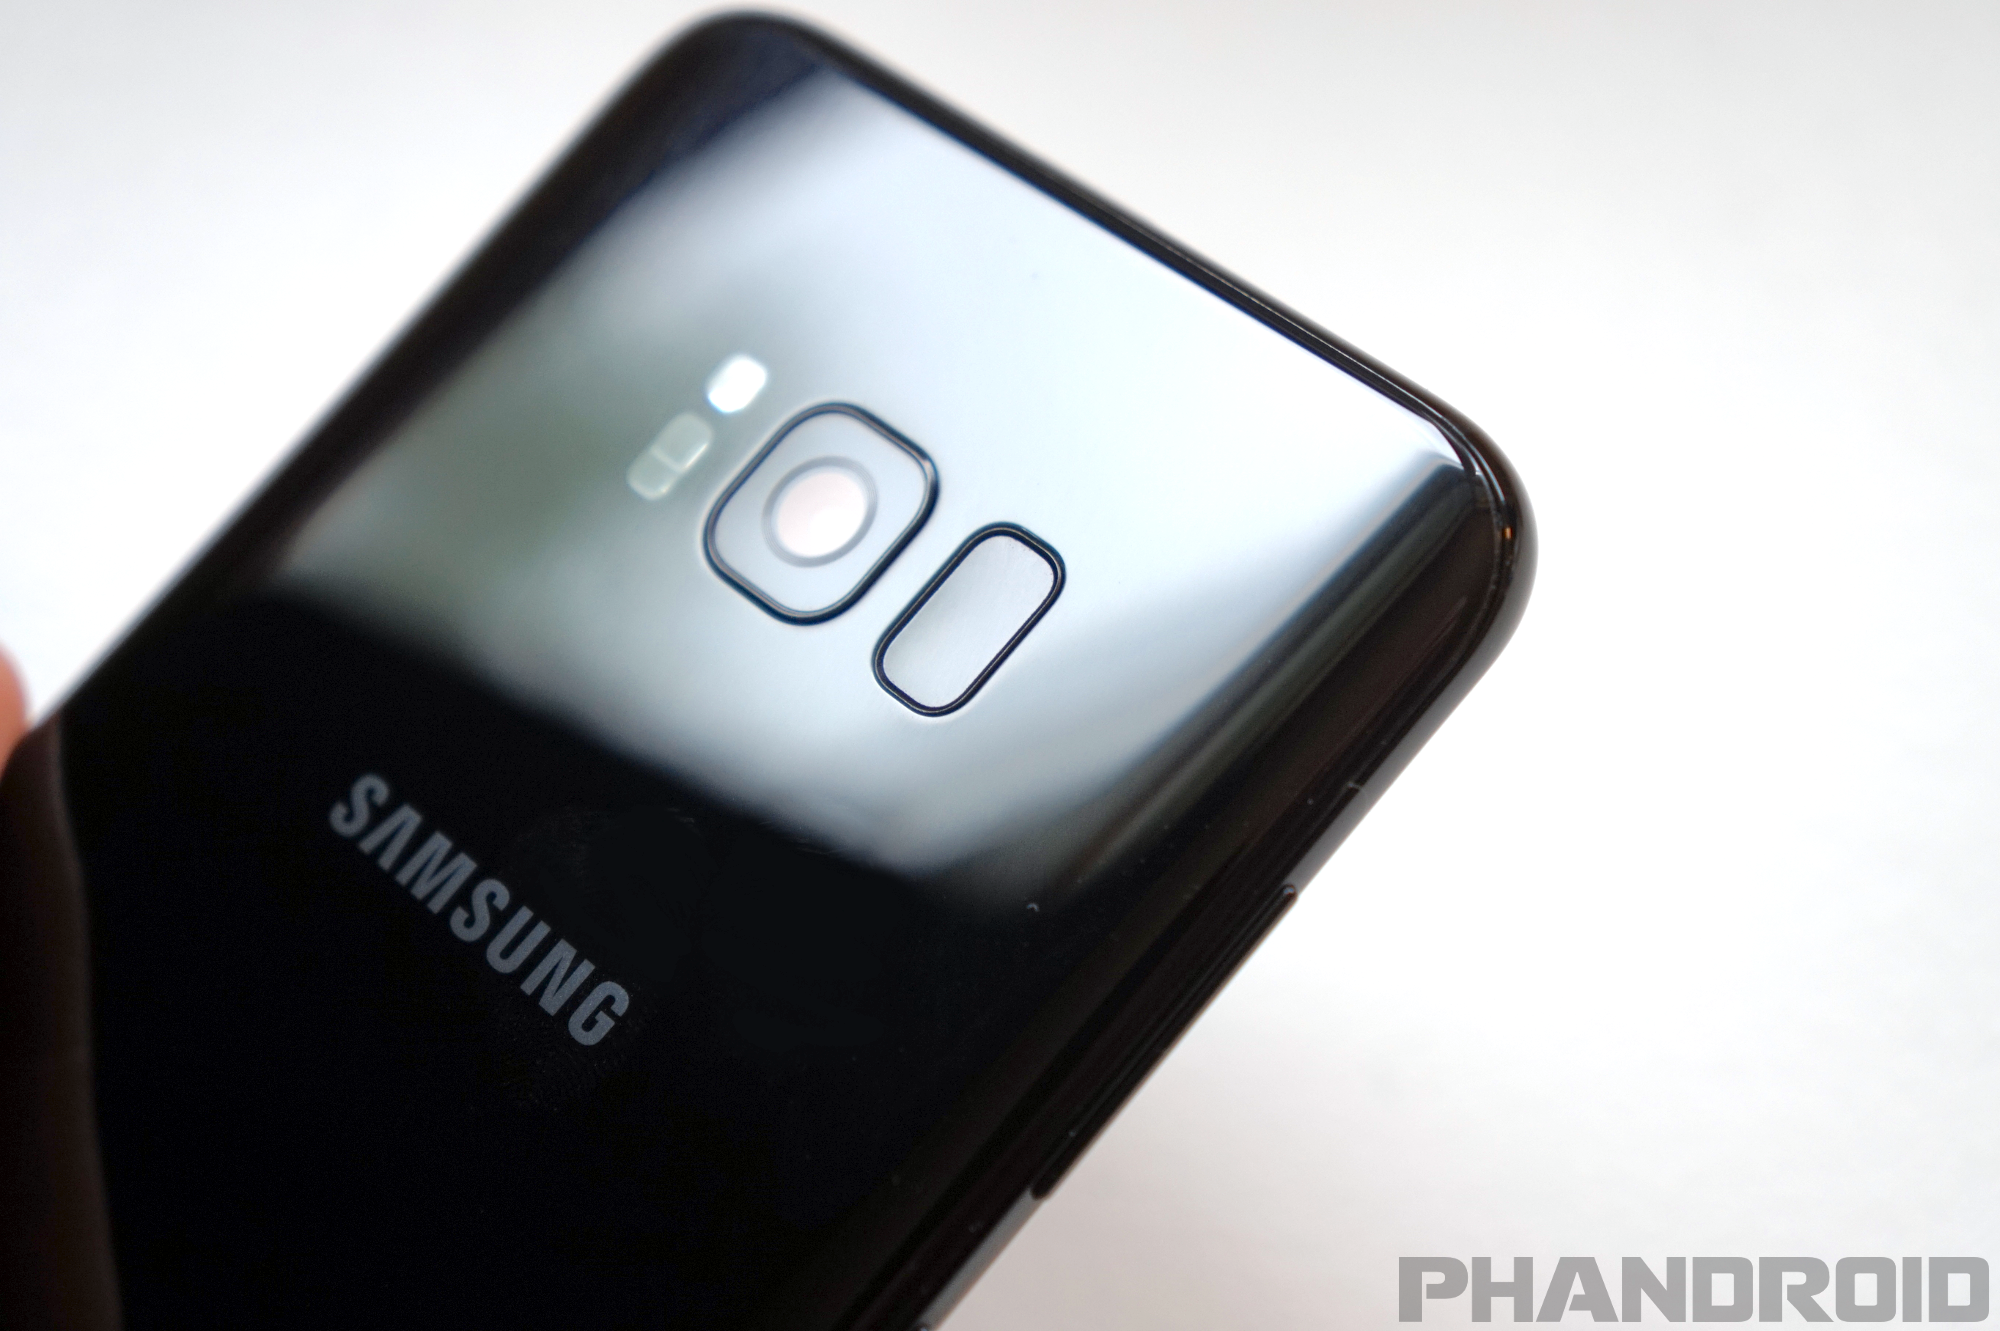 T-Mobile and AT&T release Android Pie updates for Samsung Galaxy S8